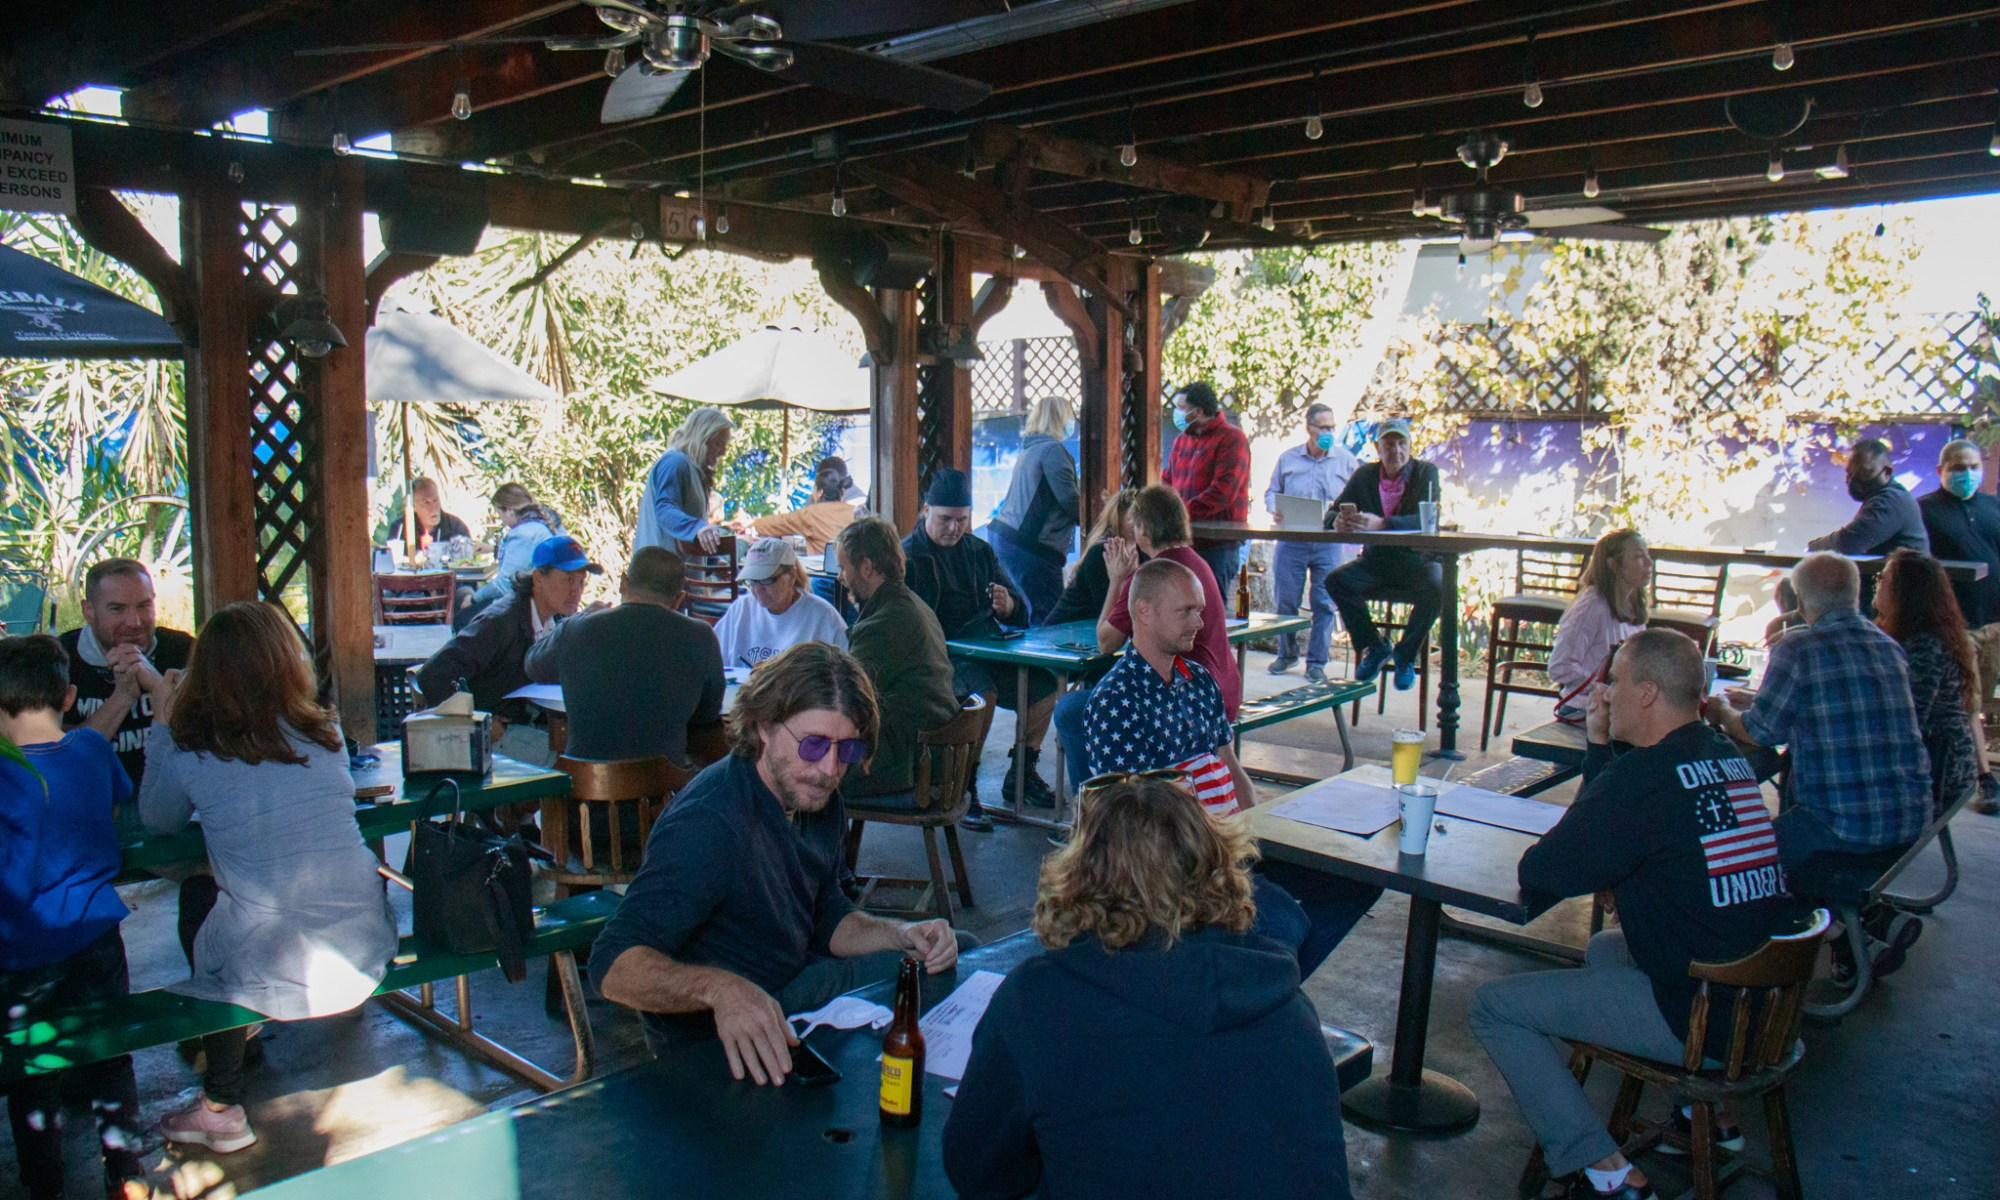 Dozens of patrons sit at the outdoor patio of the Tinhorn Flats Saloon and Grill in Burbank